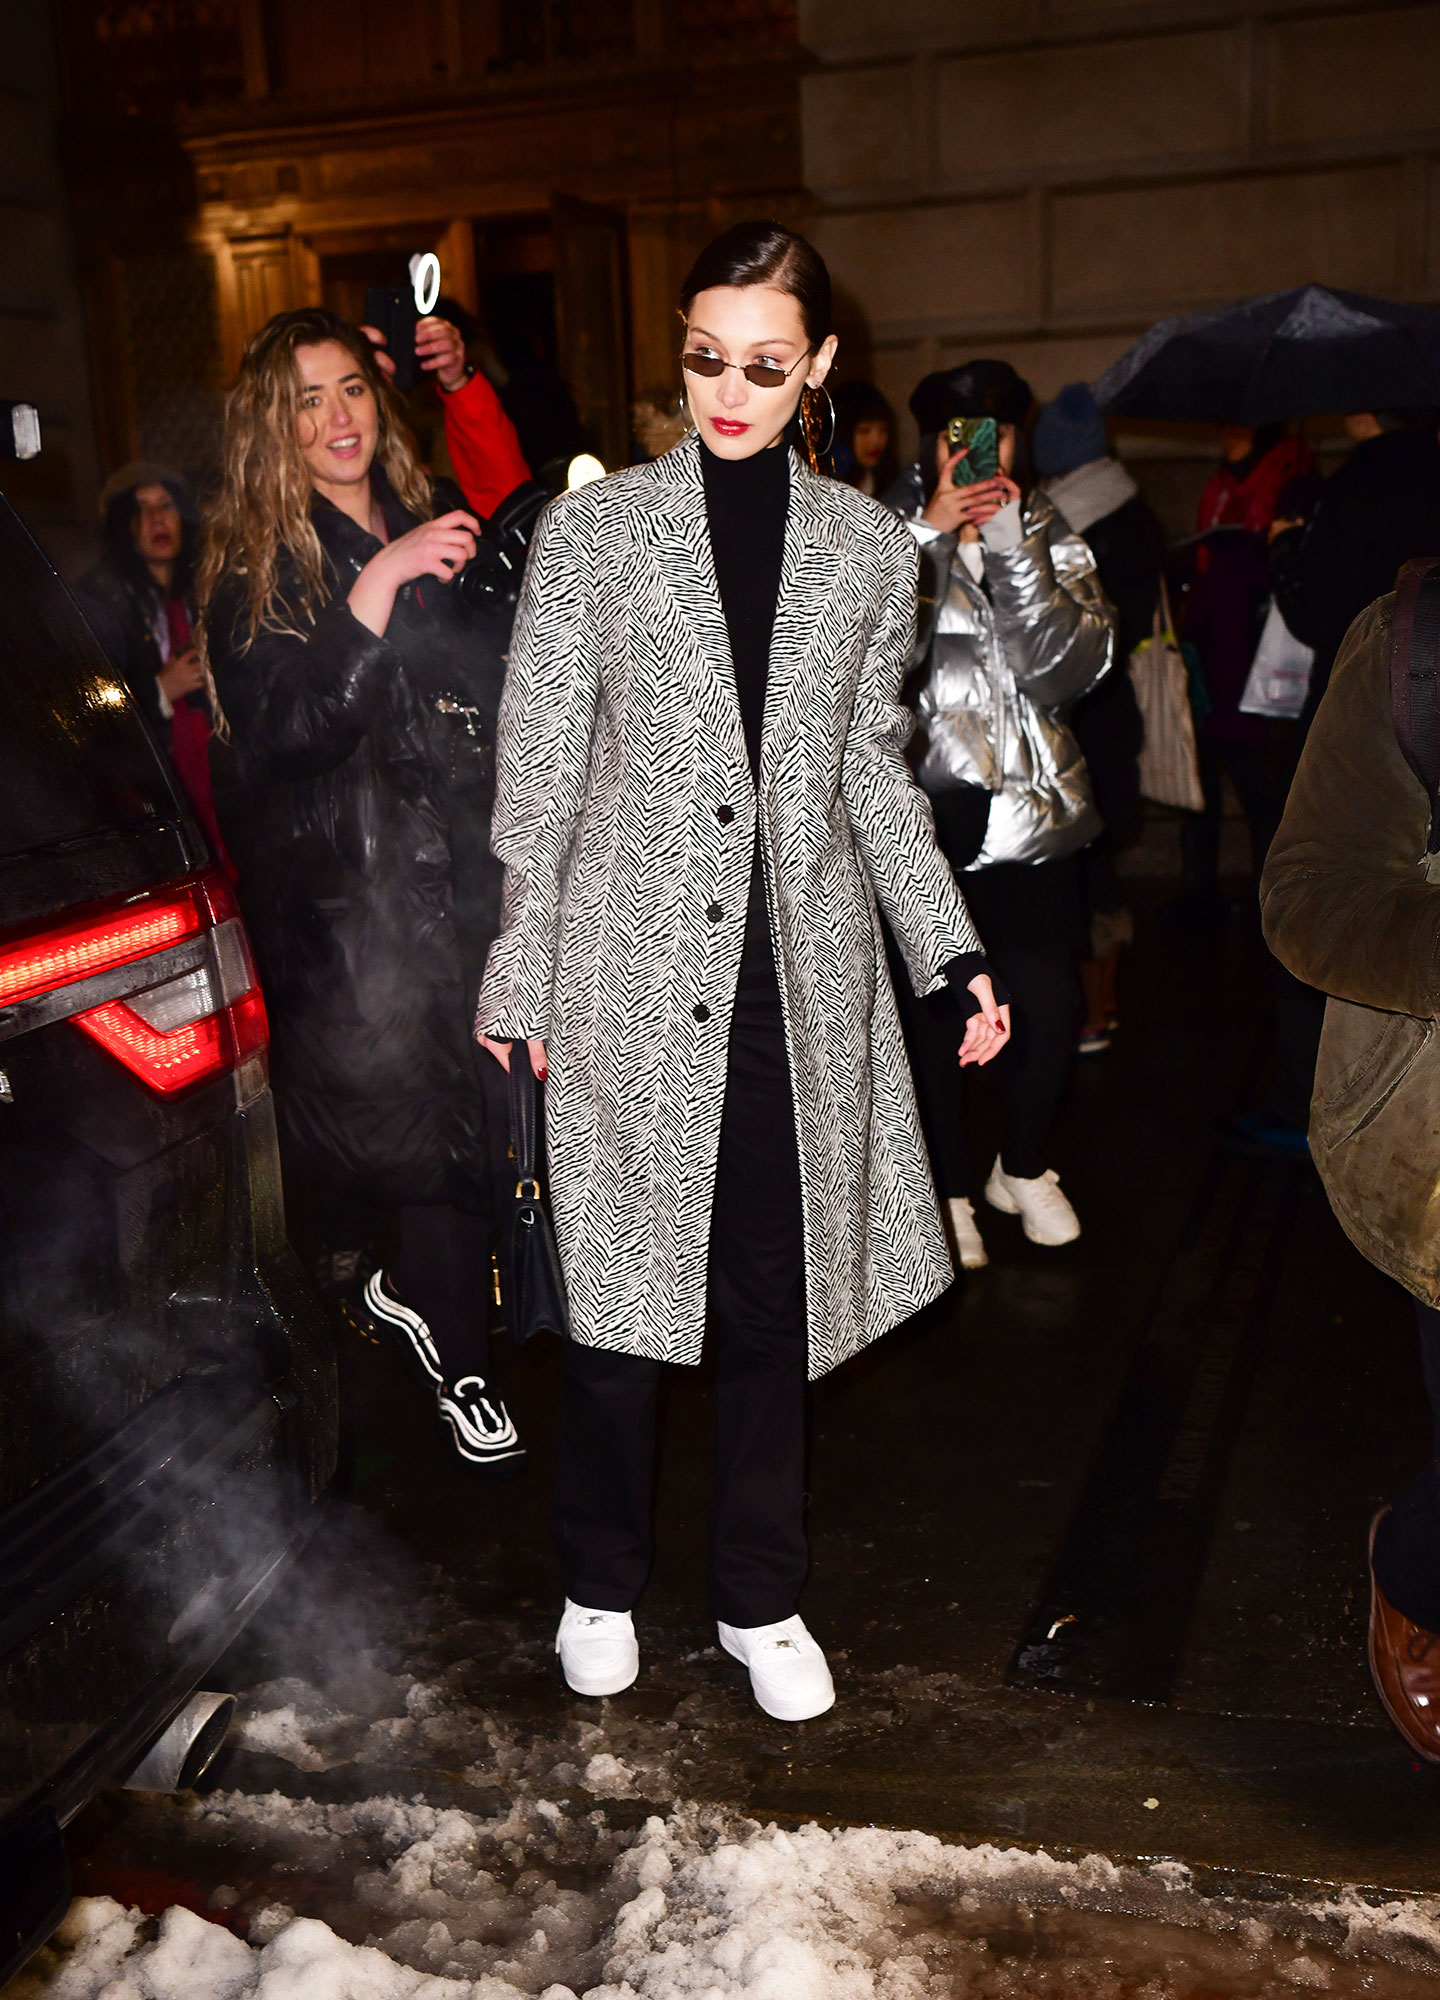 Bella Hadid - Defining model-off-duty, the youngest Hadid sister was seen leaving the Oscar de le Renta show on February 12 in a turtleneck and black and white jacket she paired with tiny shades and white sneakers.